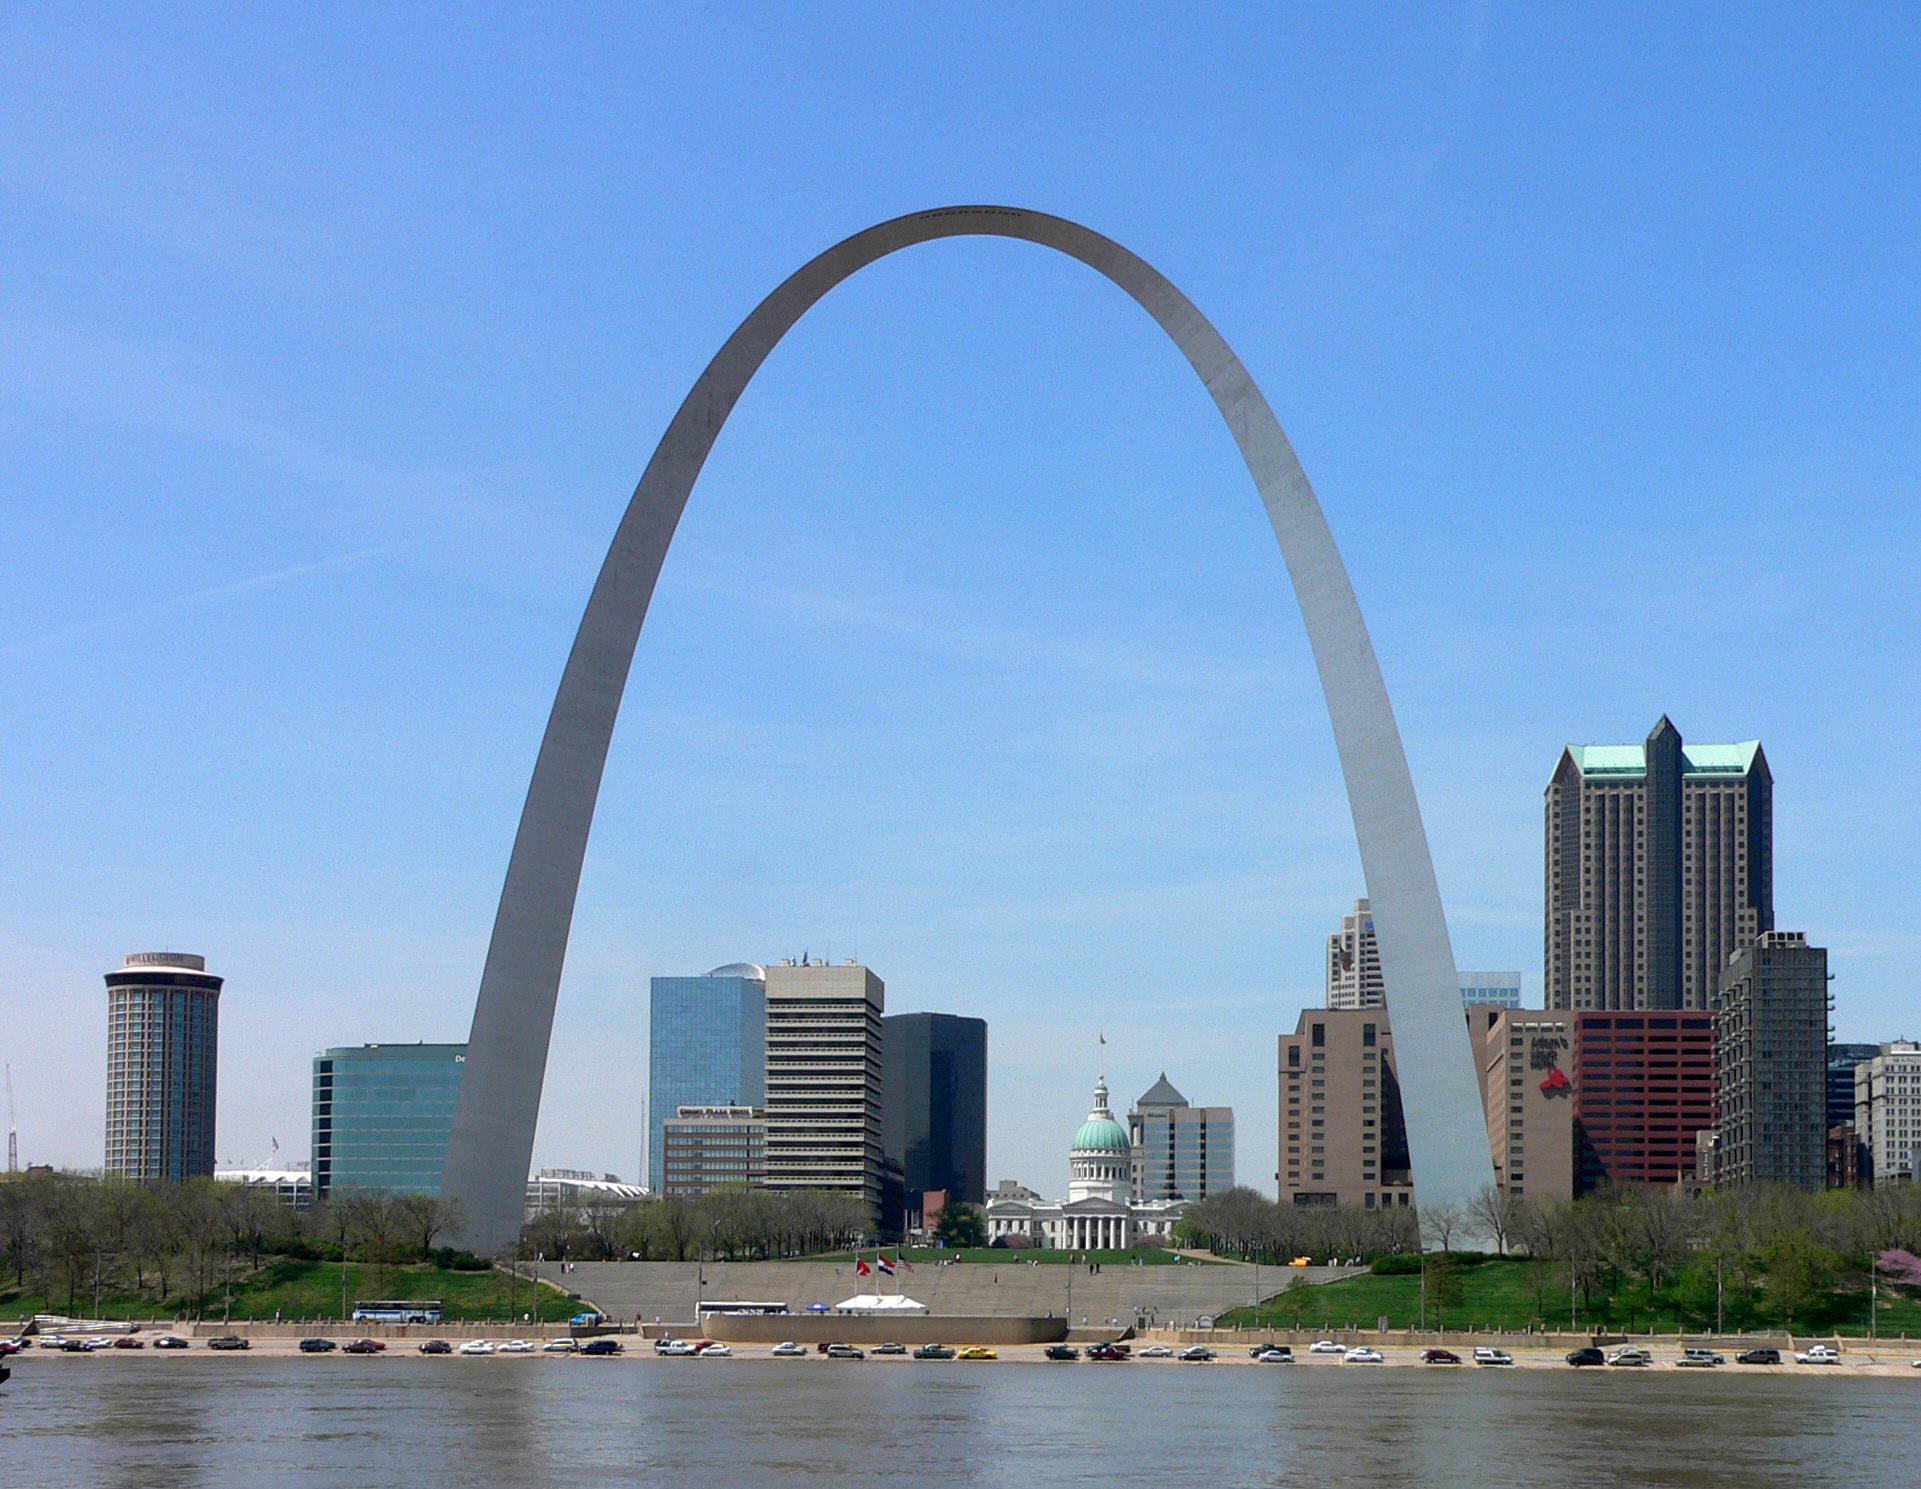 File:St Louis Gateway Arch.jpg - Wikipedia, the free encyclopedia